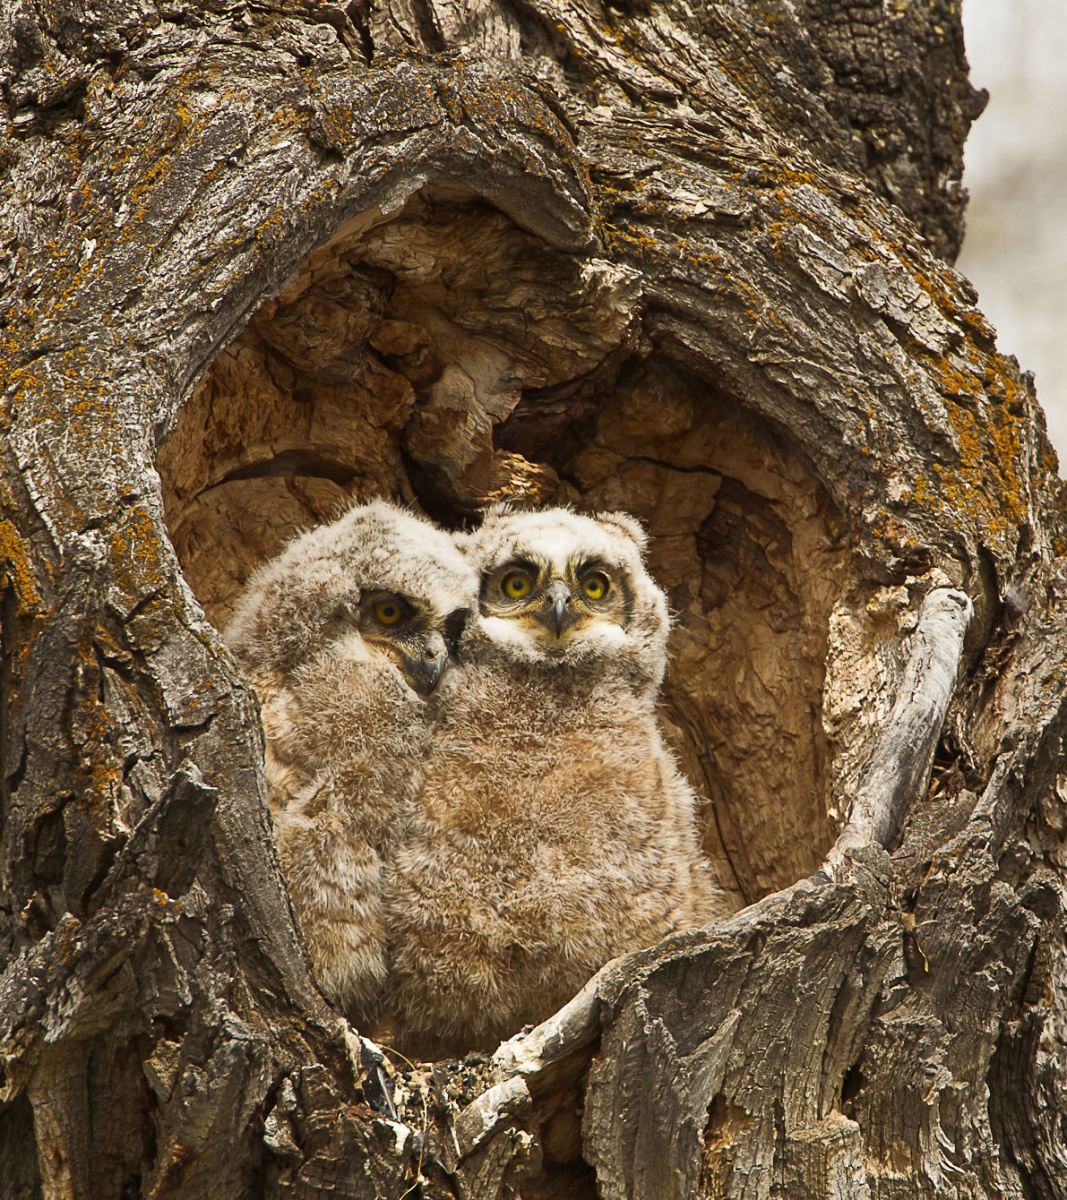 two owlets sit in a tree burrow that's in the shape of a heart